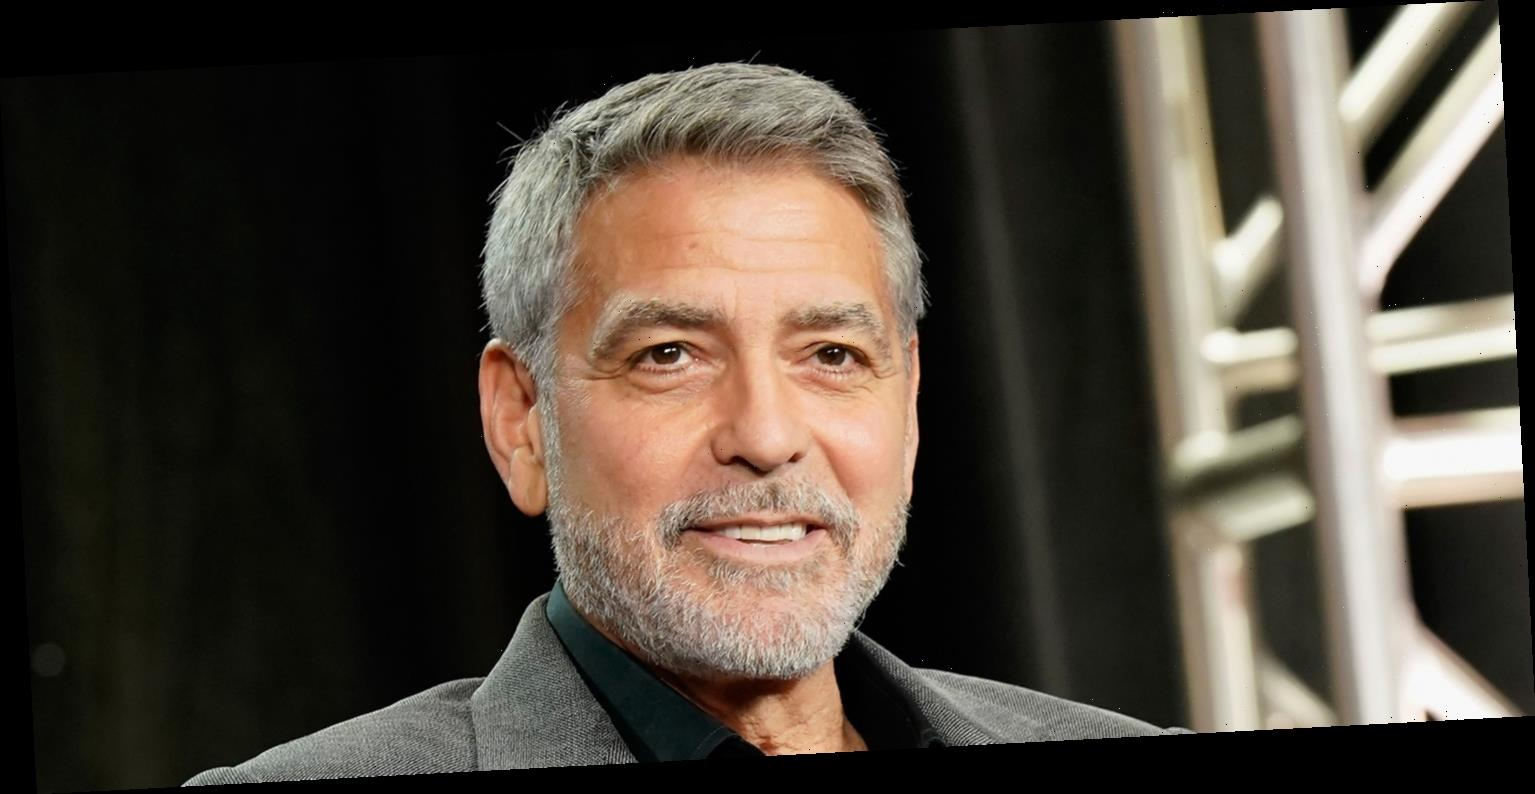 George Clooney Reveals Why He's Happy He Never Starred in a Major Film Franchise